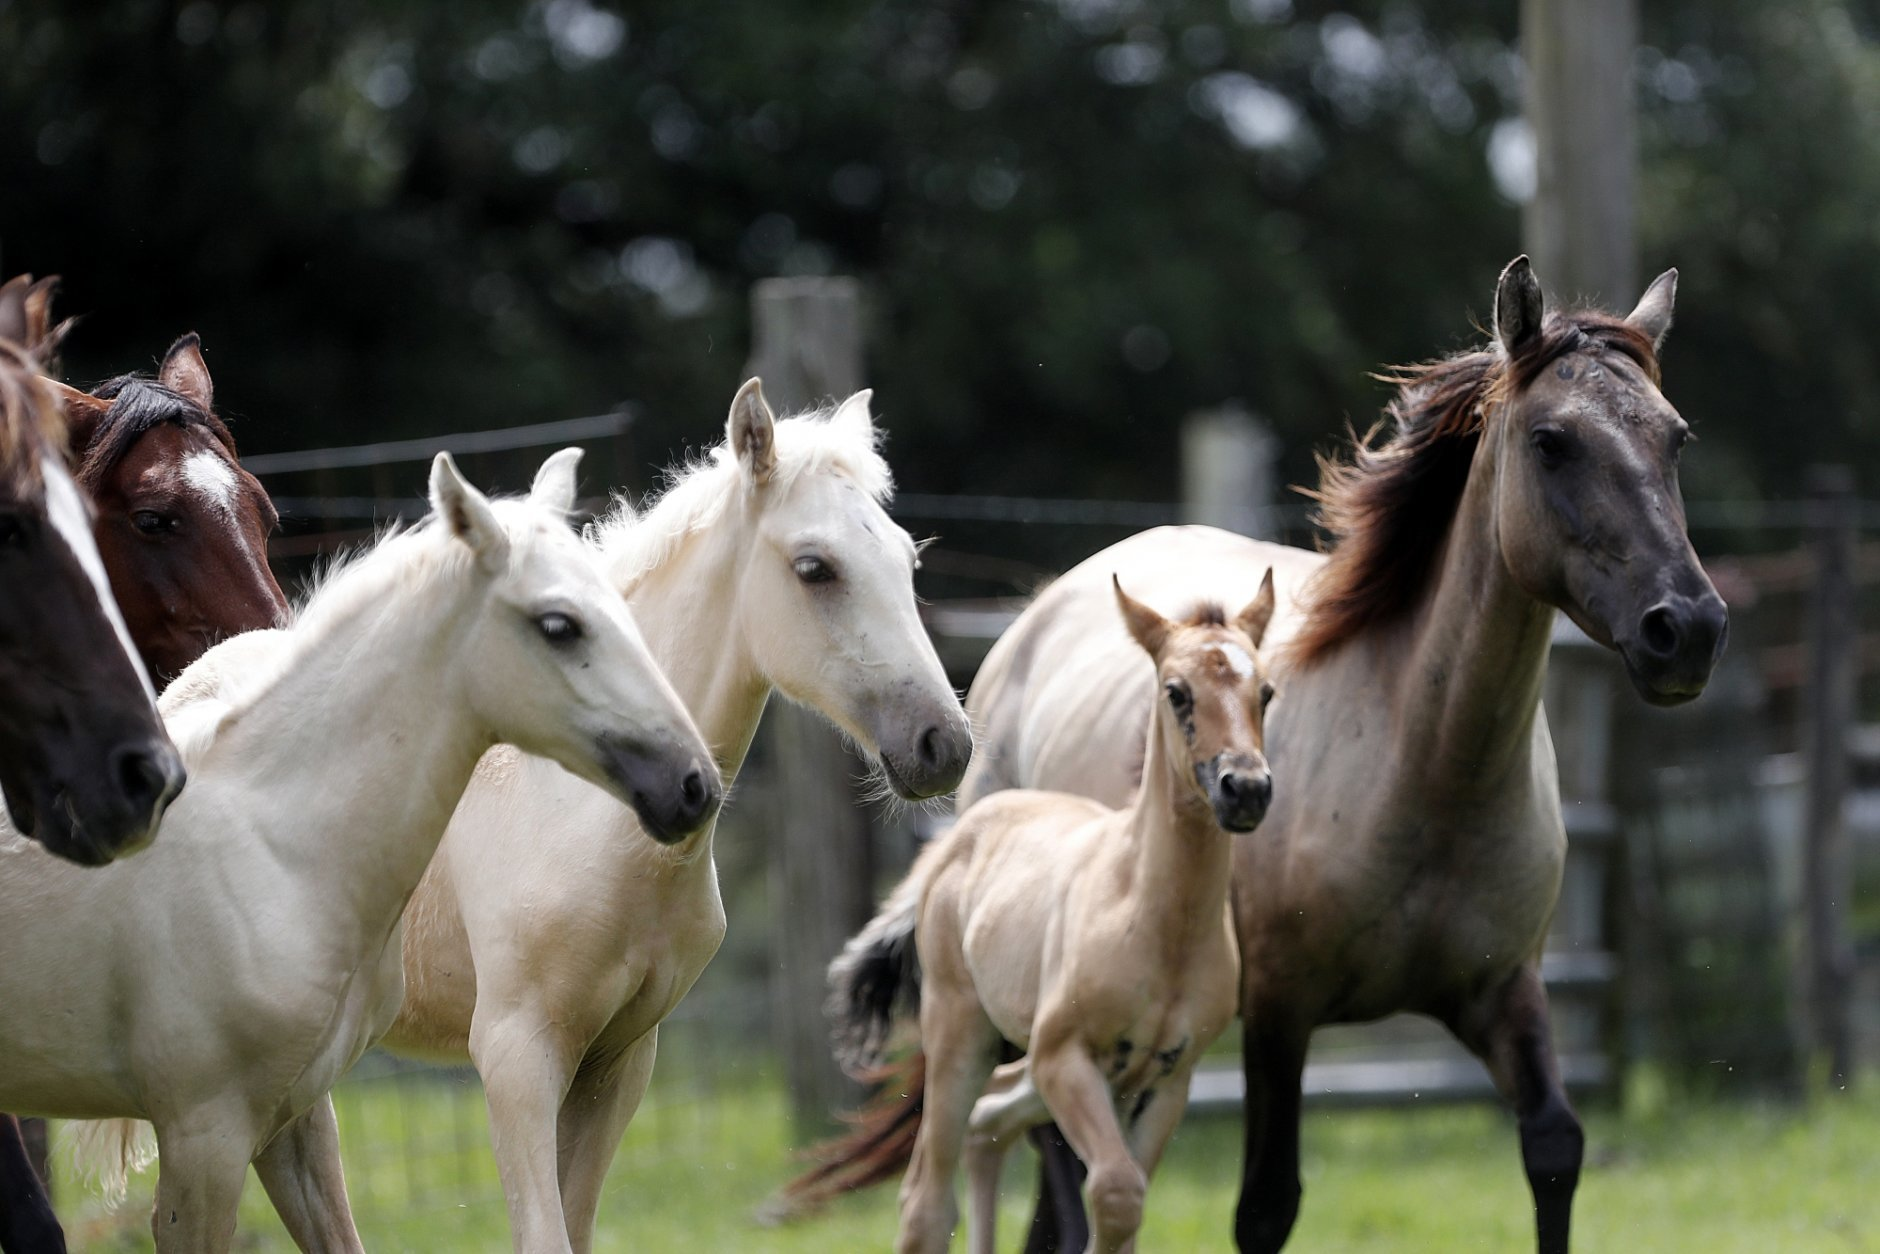 CORRECTS TO FILLY FROM A PHILLY COLT - In this July 17, 2018, photo, Choctaw mare, right, and her 3-month-old filly, center, run with other Choctaw horses on Bill Frank Brown's farm in Poplarville, Miss. Choctaw horses are descended from those brought to the United States in the 1500s and later by Spanish explorers and colonists, said Dr. Phillip Sponenberg of the Virginia-Maryland College of Veterinary Medicine. (AP Photo/Gerald Herbert)